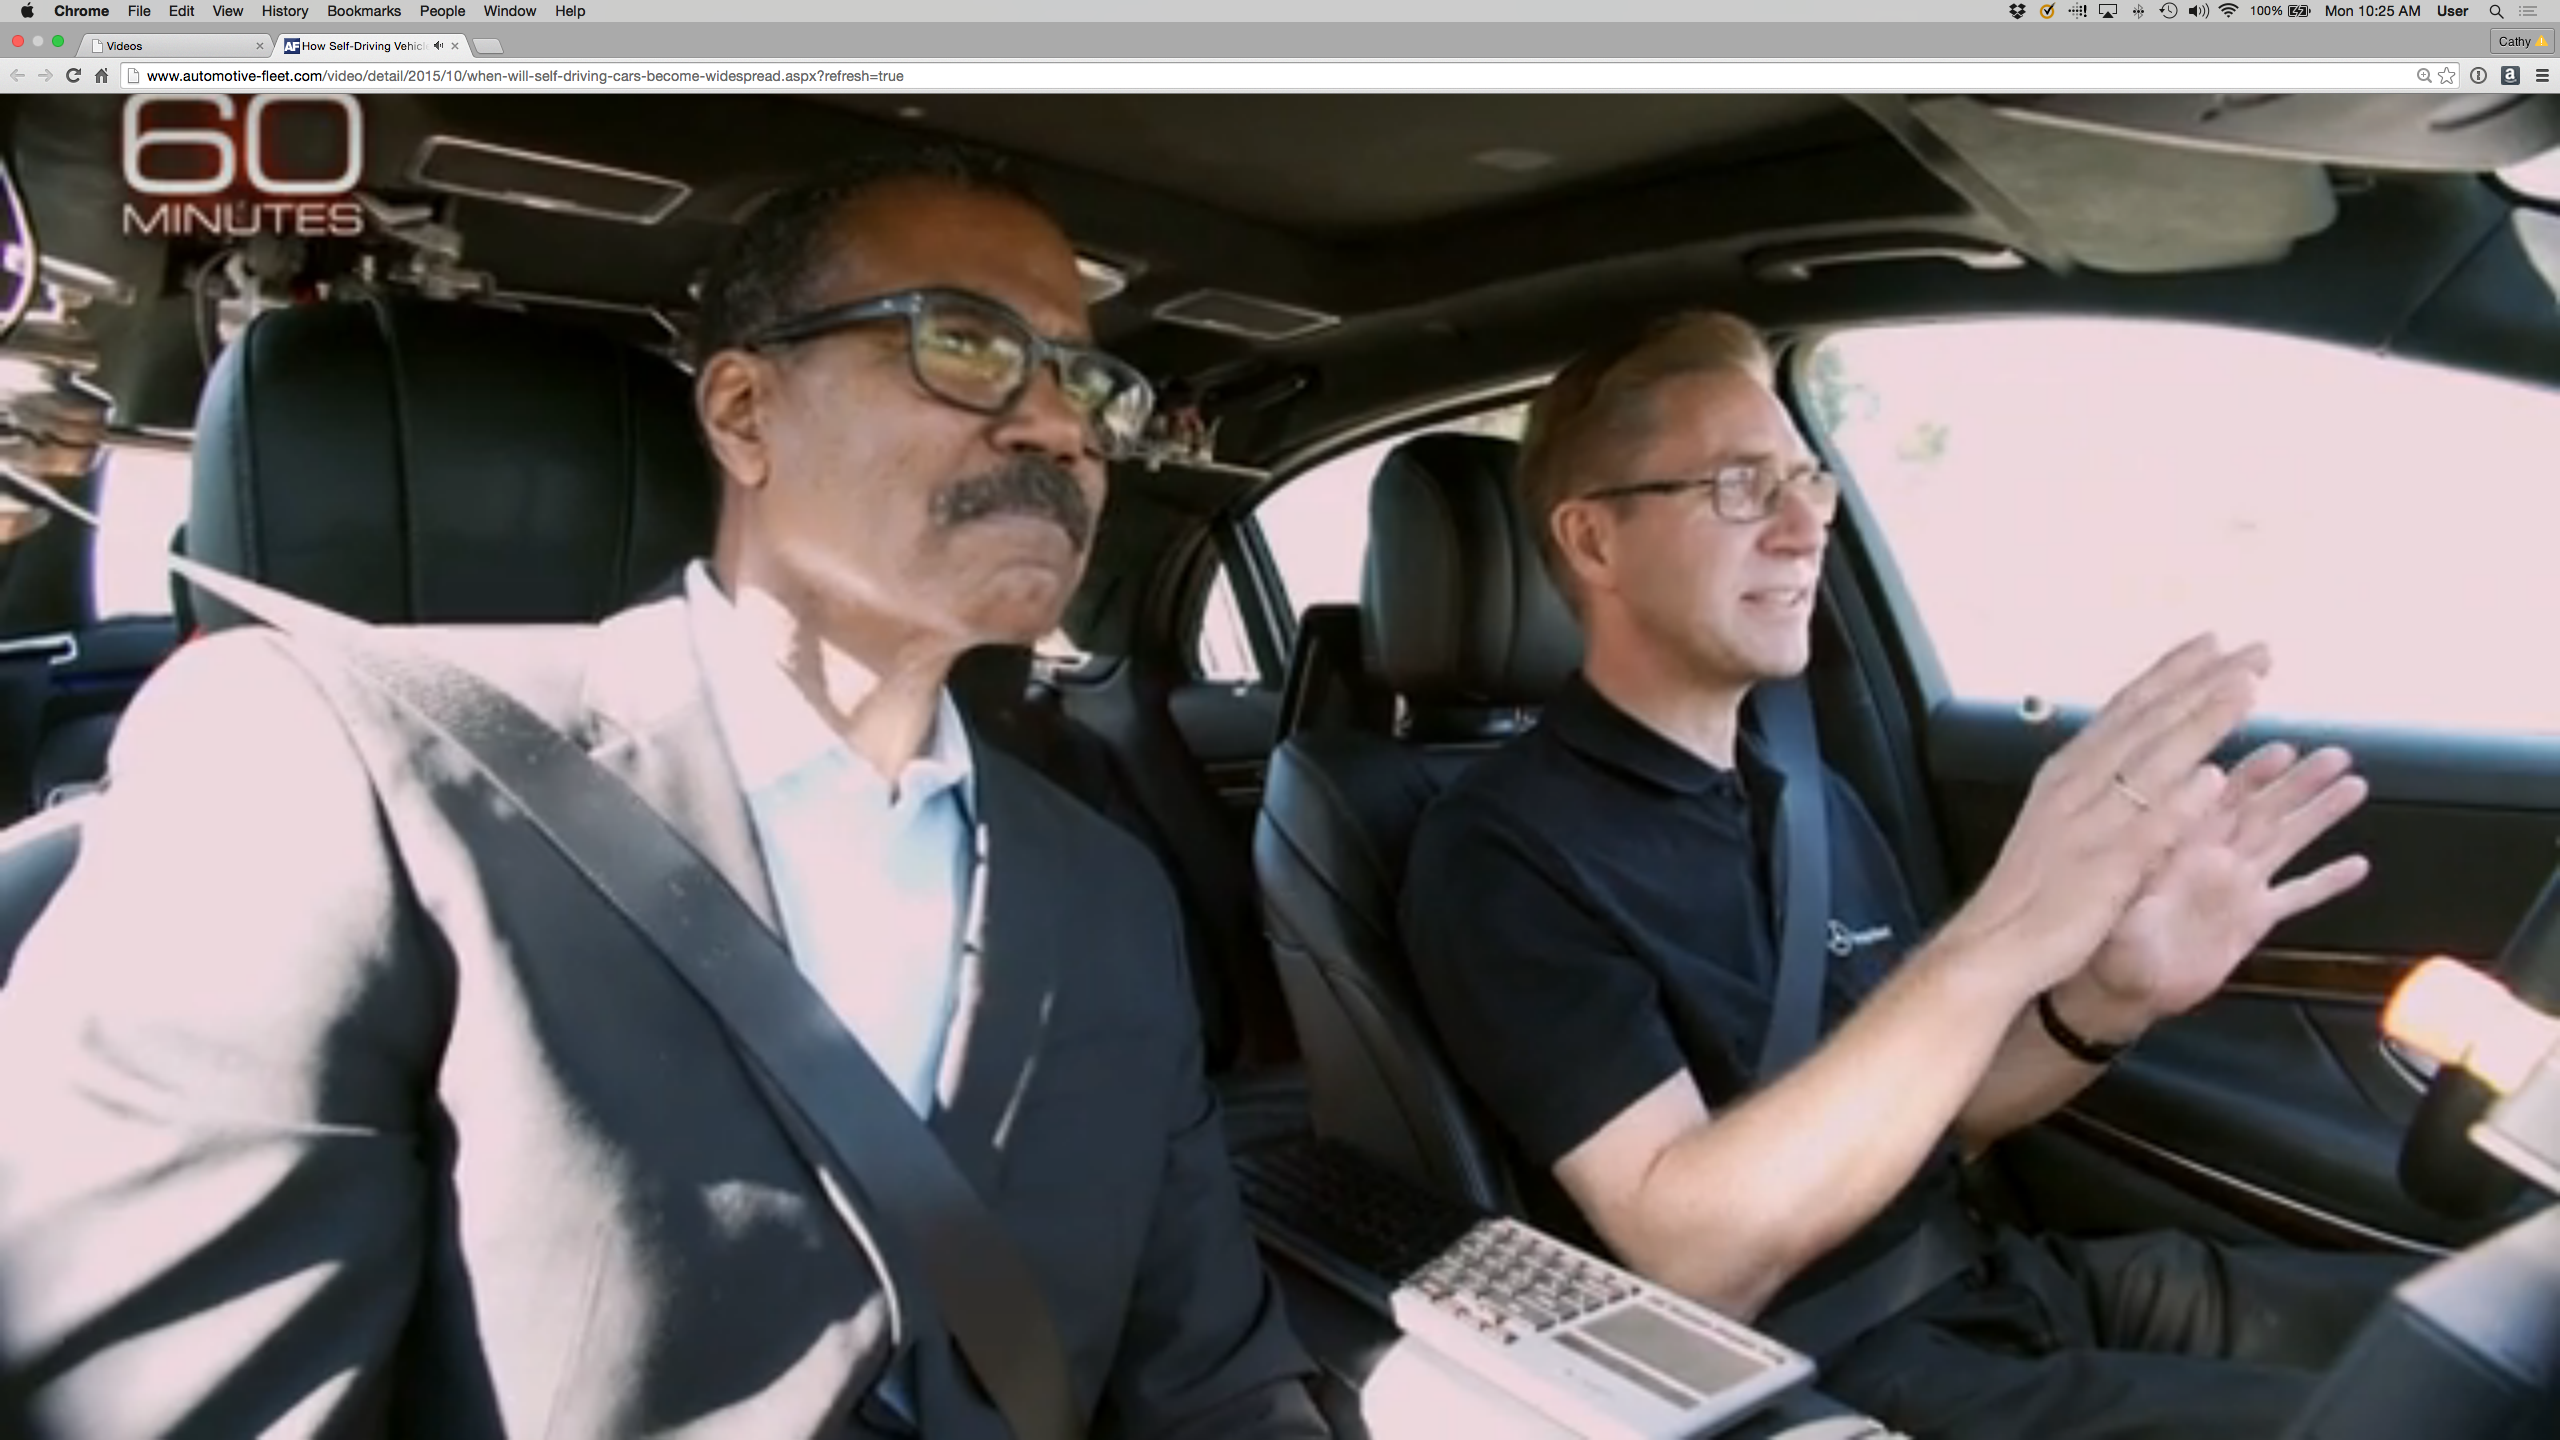 60 Minutes' Examines Self-Driving Cars - Safety - Automotive